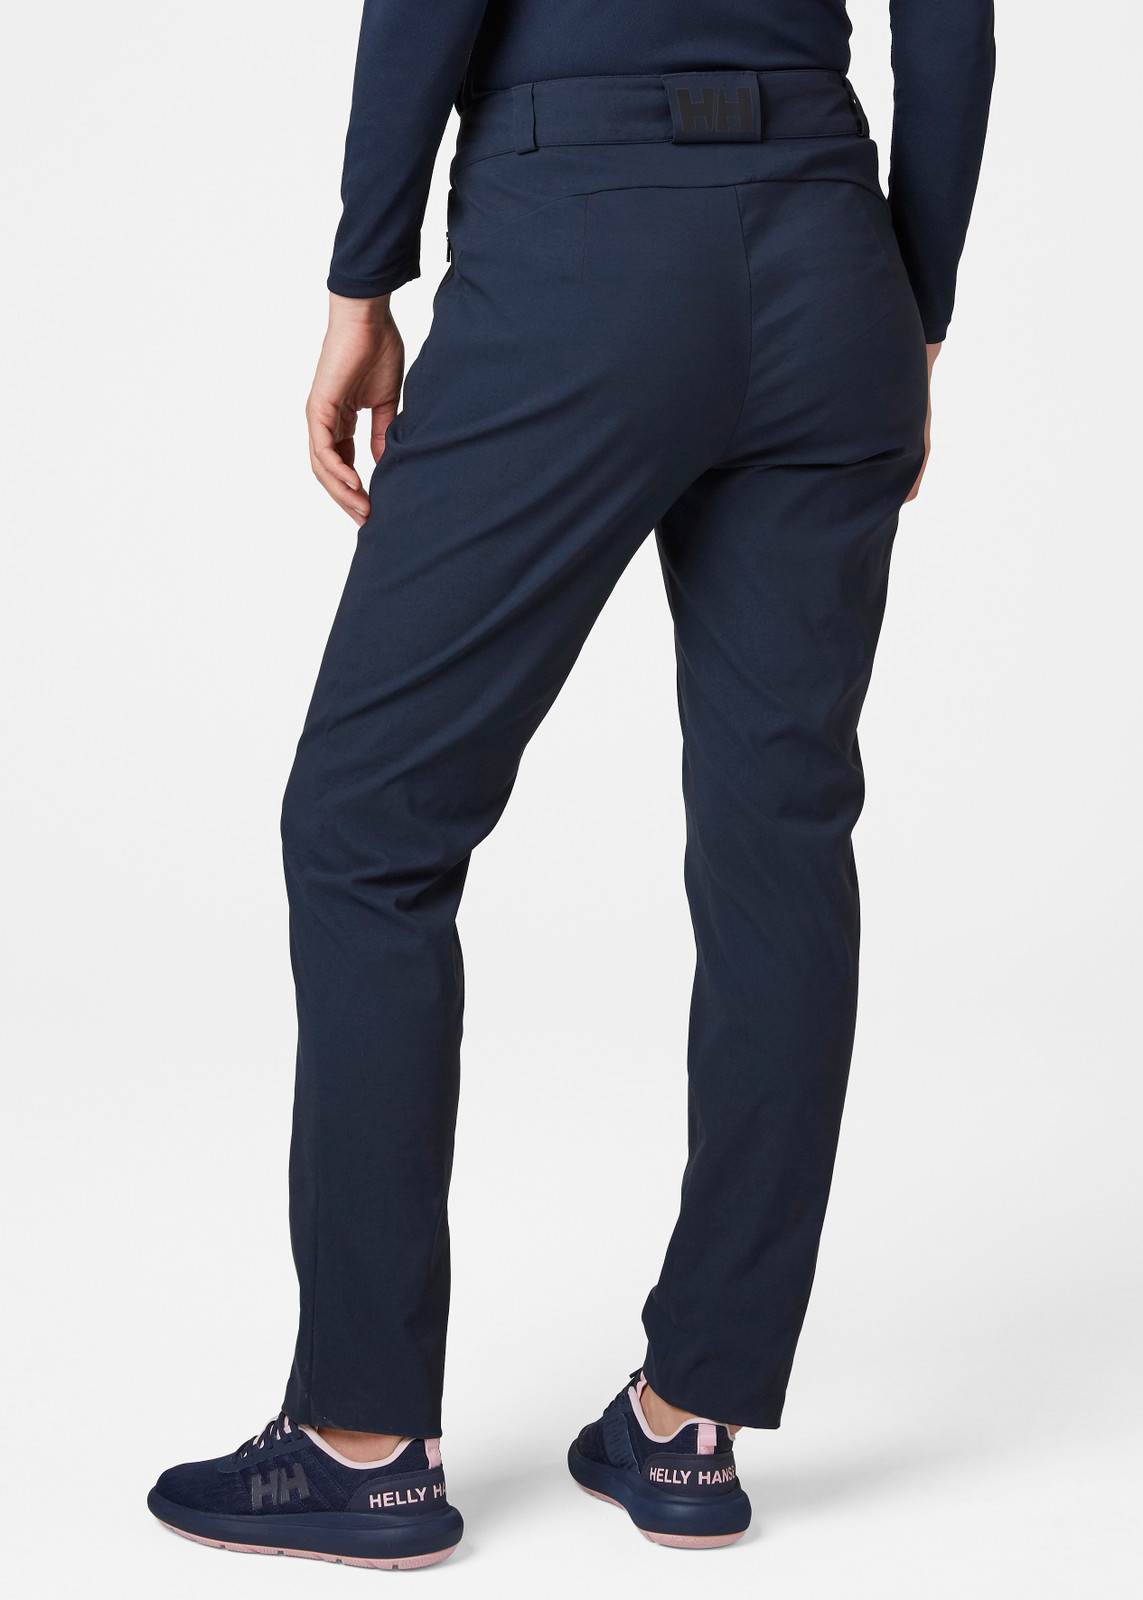 Helly Hansen HP Racing Pant, Women's - Navy, 34010-597 on model back